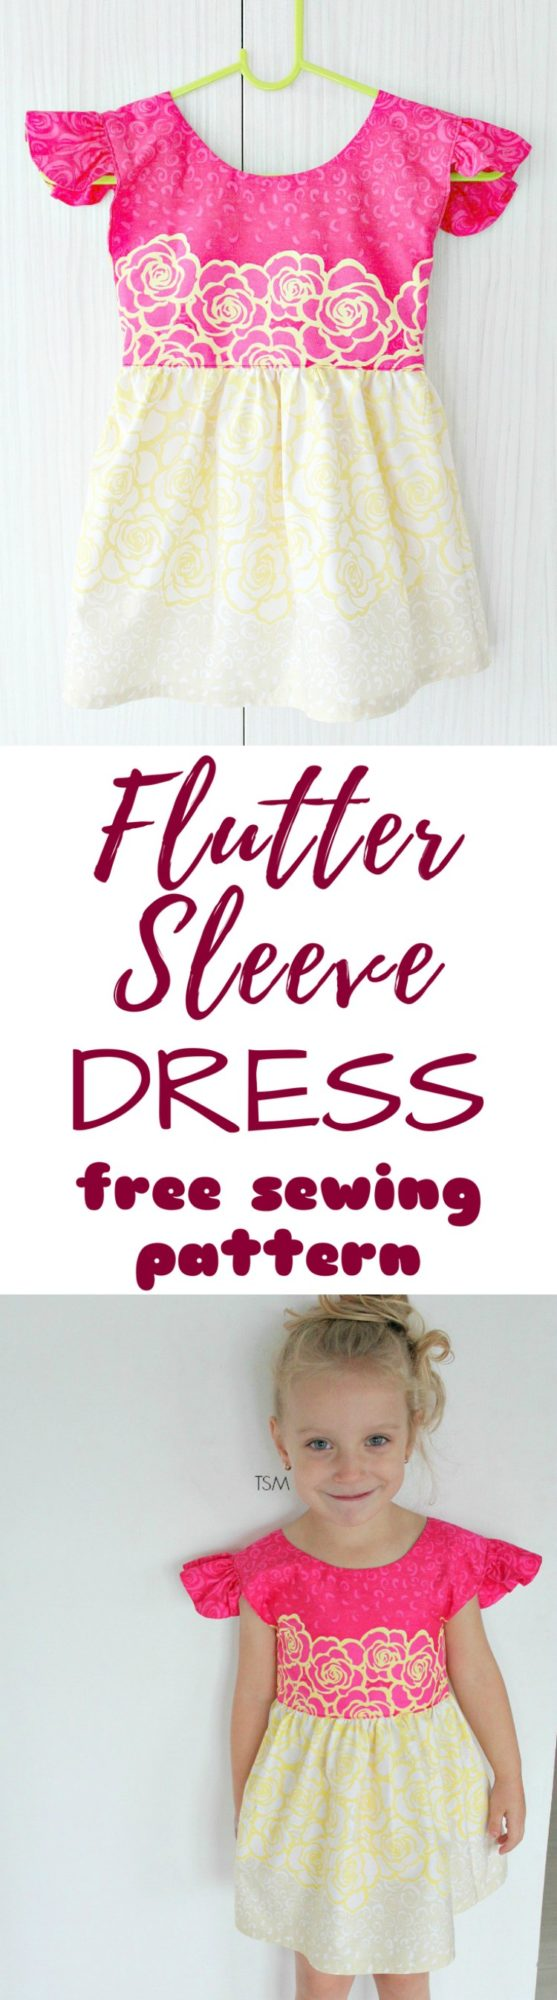 Flutter Sleeve Dress Tutorial